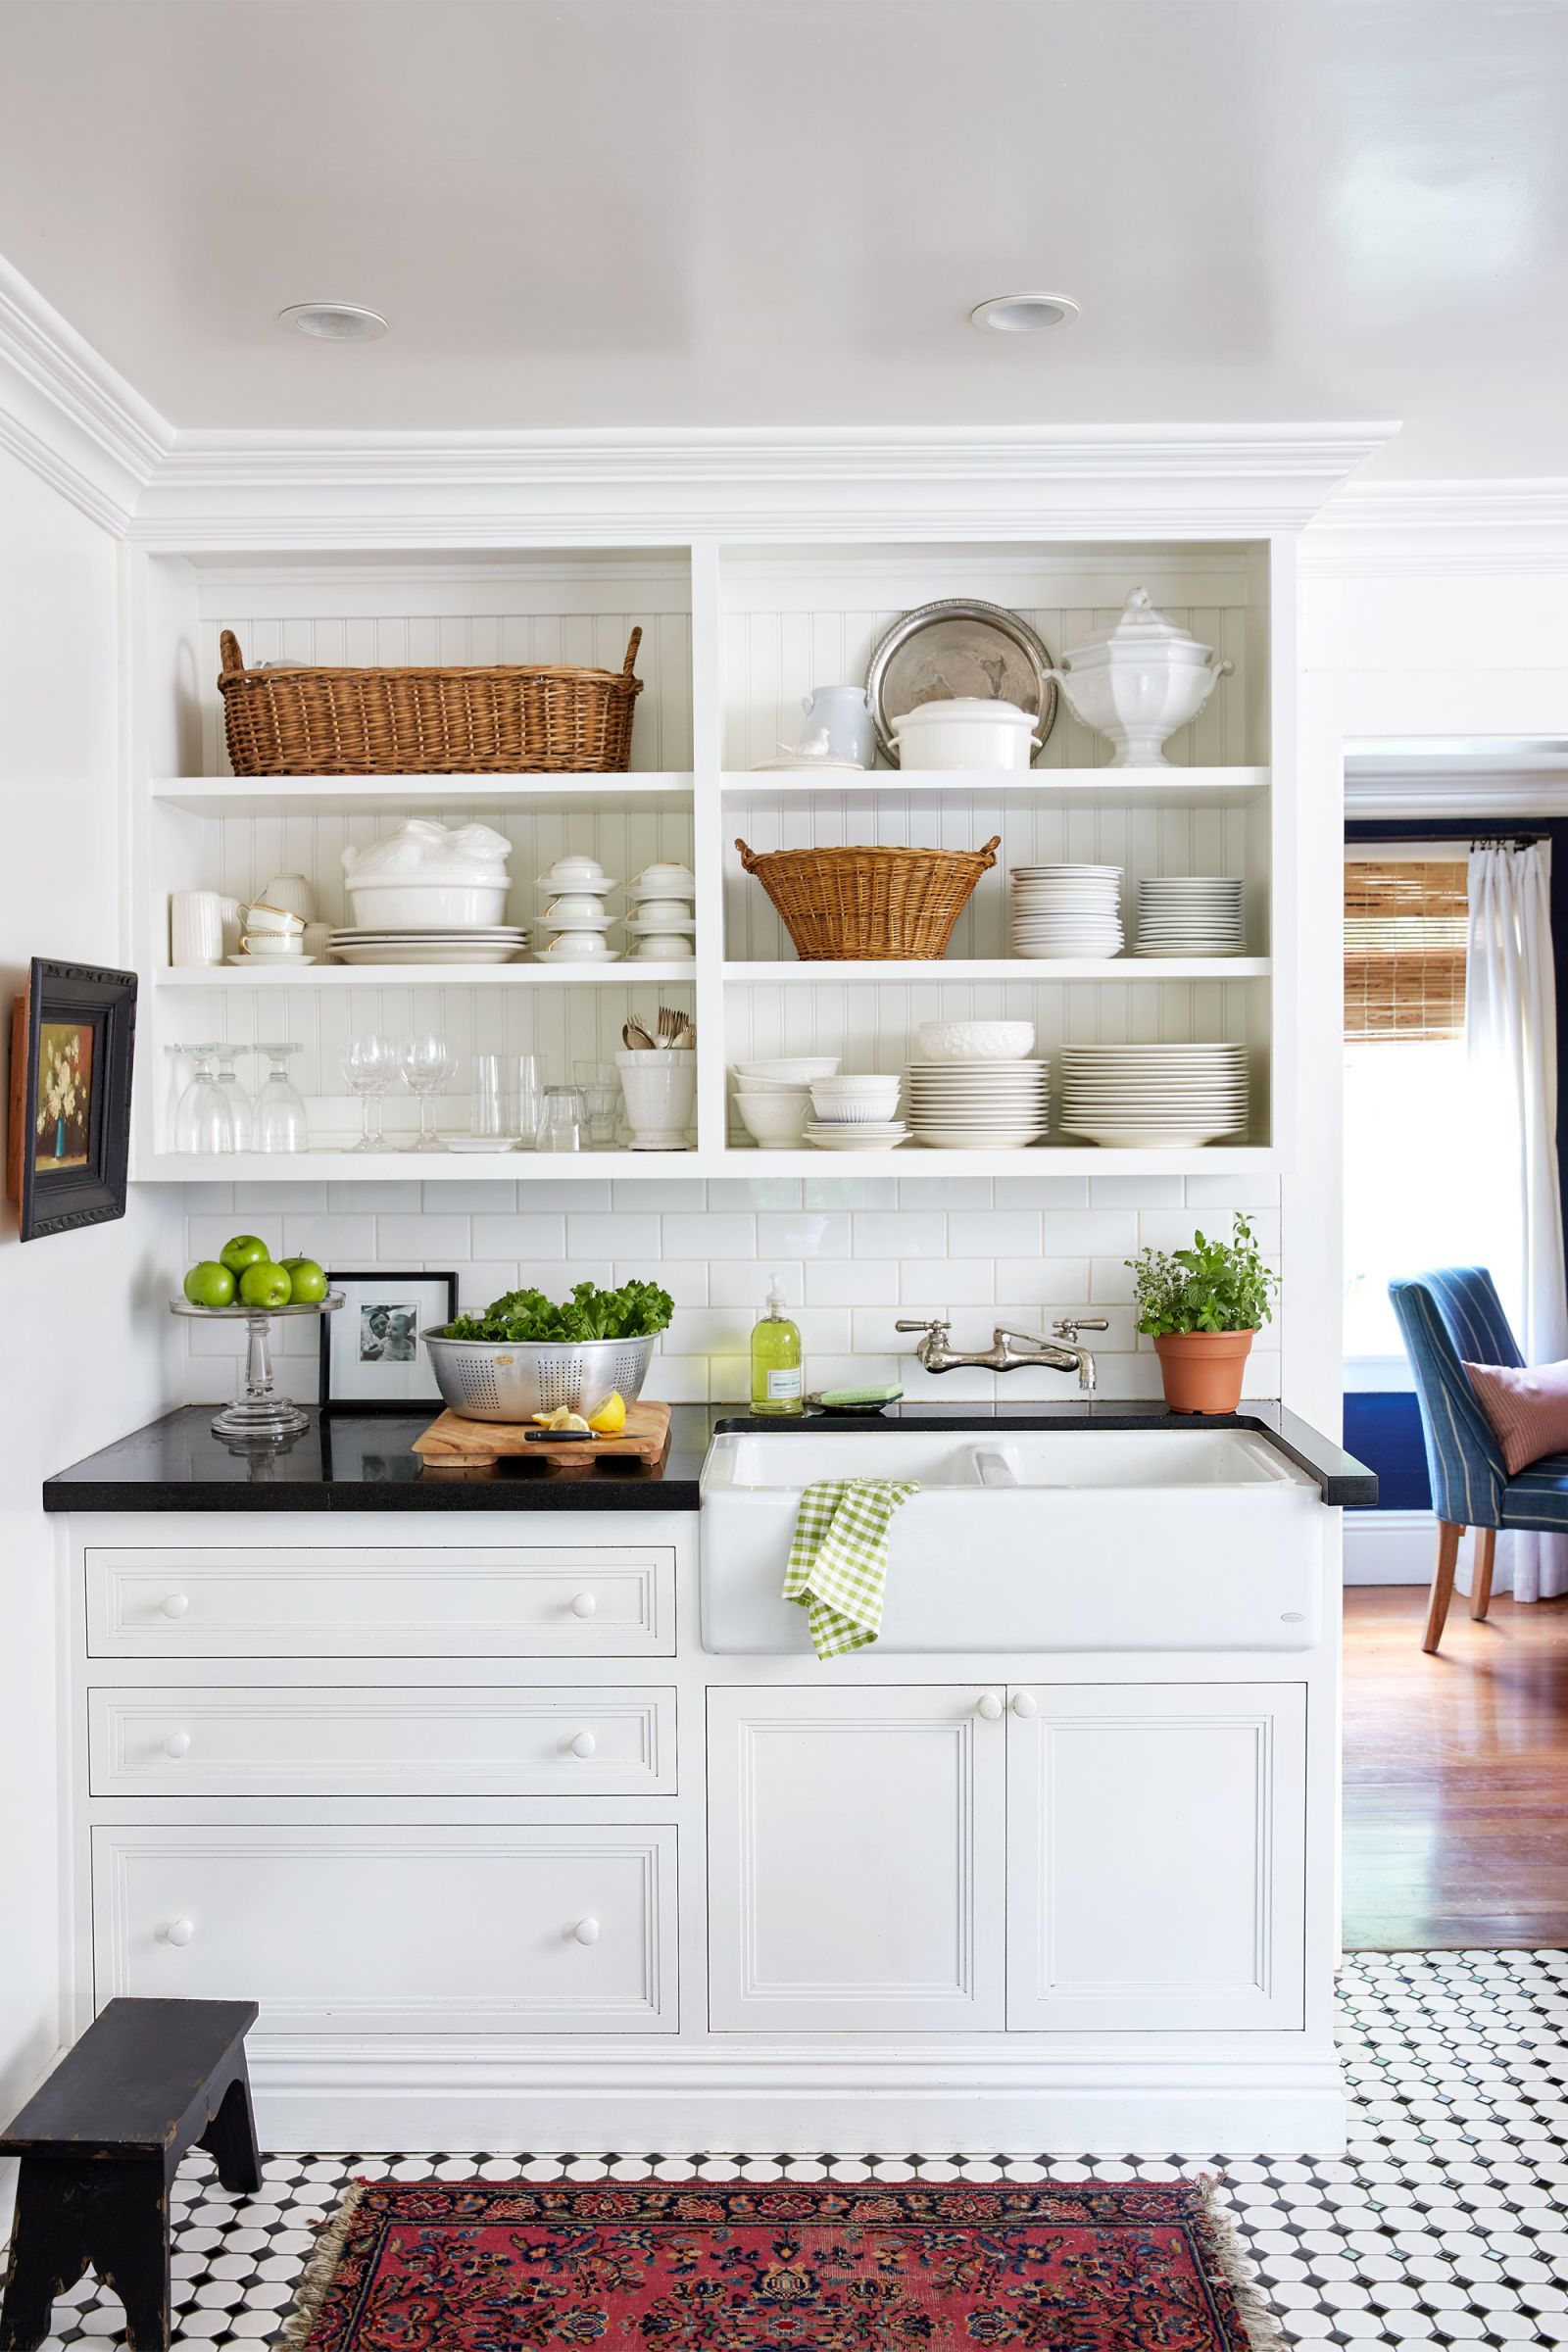 Rustic Farmhouse Kitchen White 10 Mustfollow Rules For Making A Small Space Beautiful  Sinks